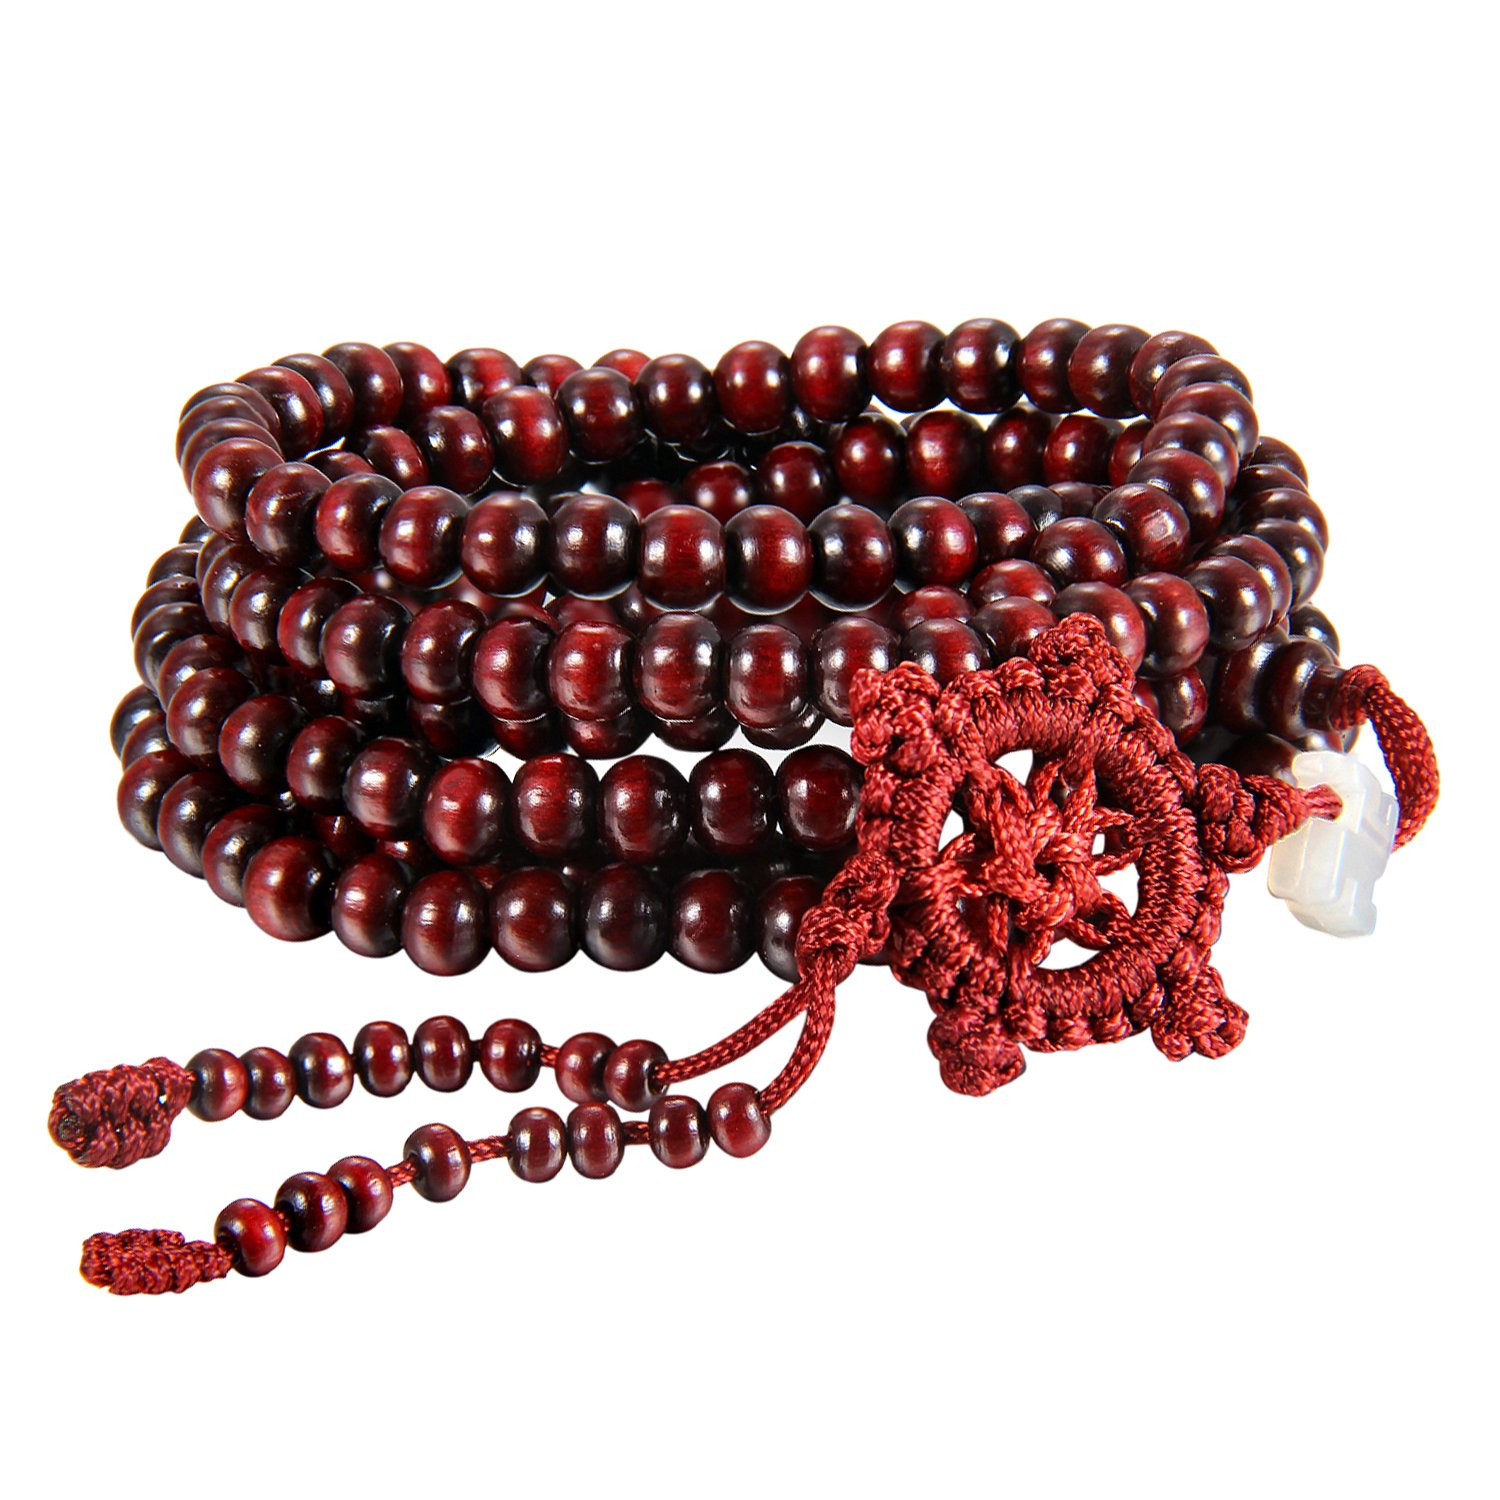 Flongo Men's Womens Sandal Wood Prayer Mala Beads Chinese Knot Elastic Bracelet Link Wrist Necklace Chain FLG02881